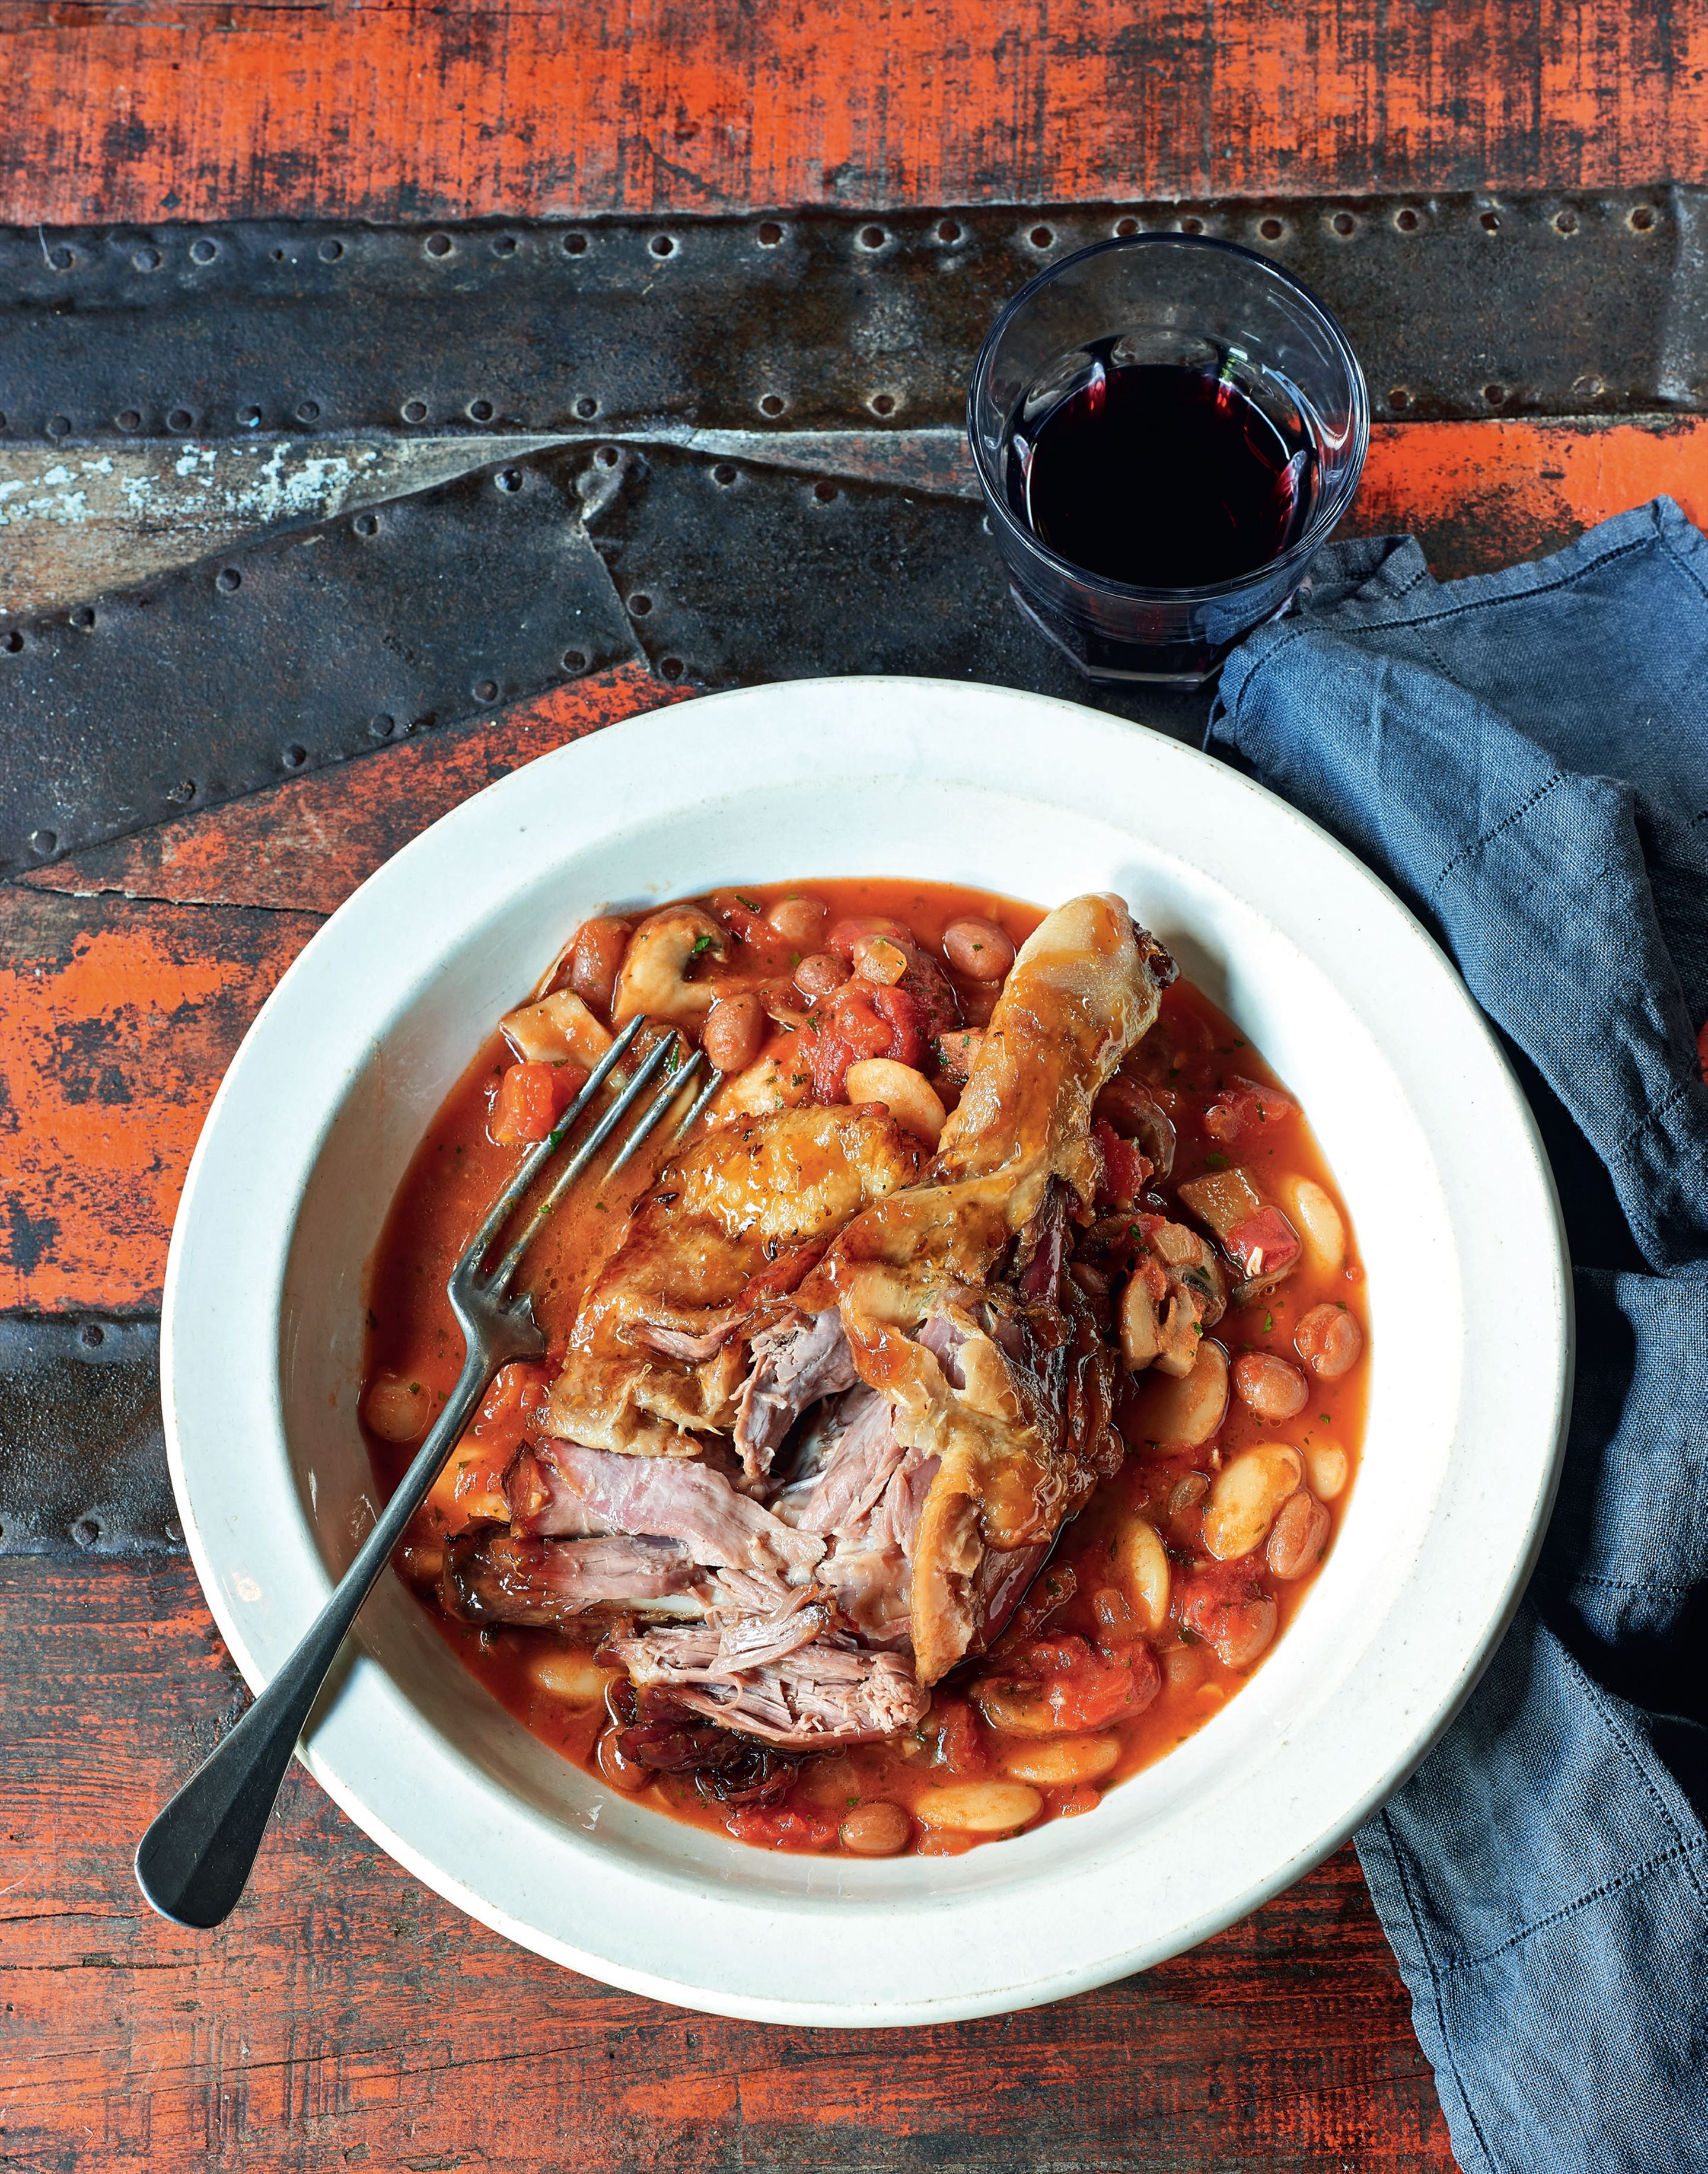 Confit duck with bean stew